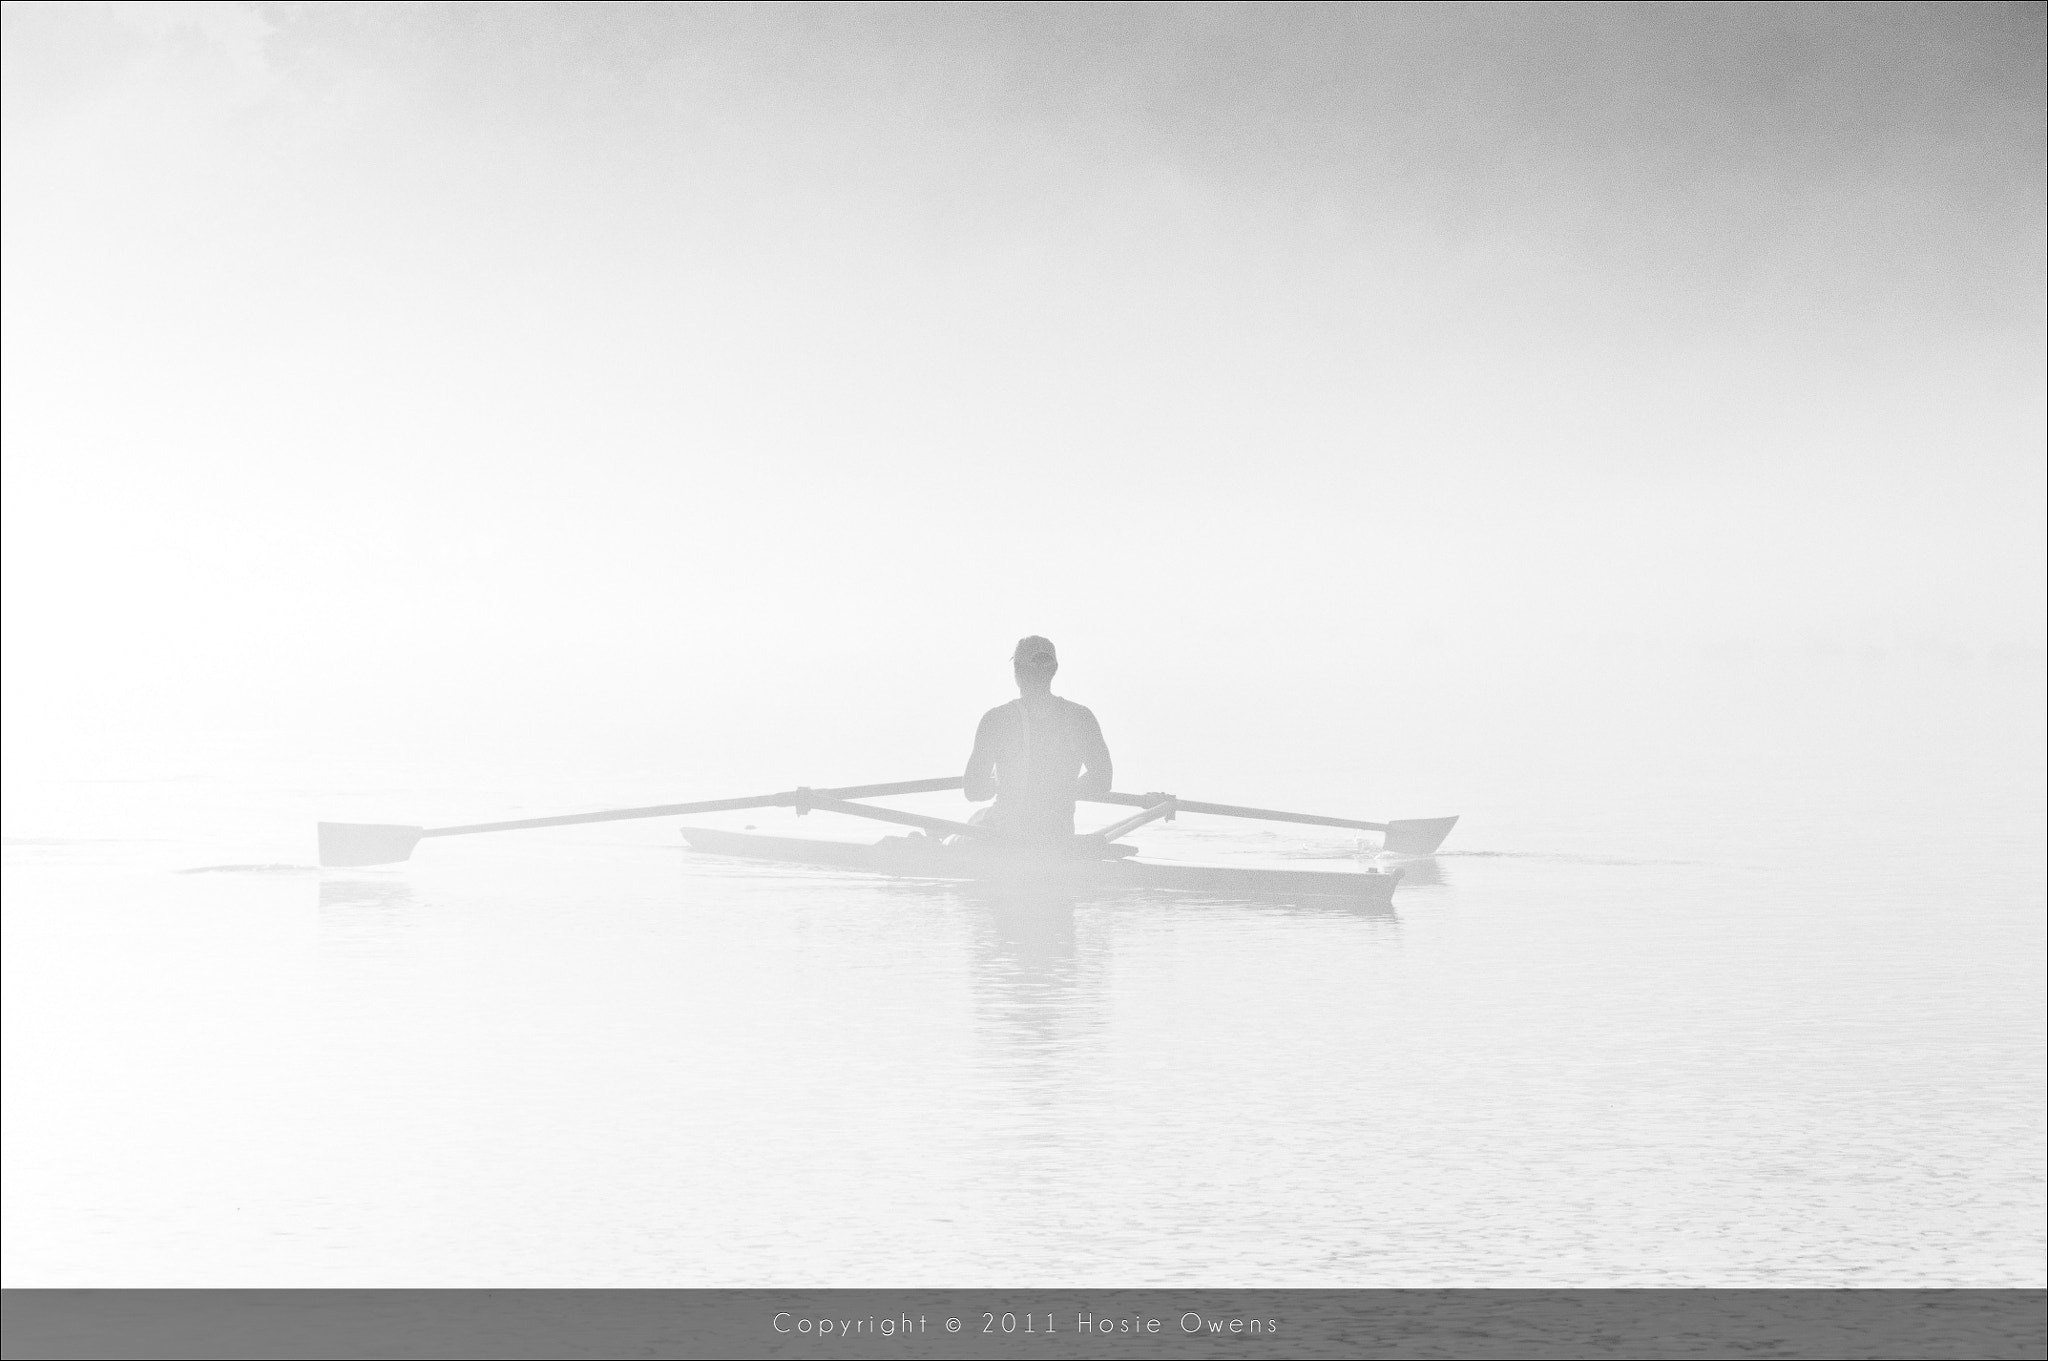 Photograph Rowing on the Chattahoochee River by Hosie Owens on 500px